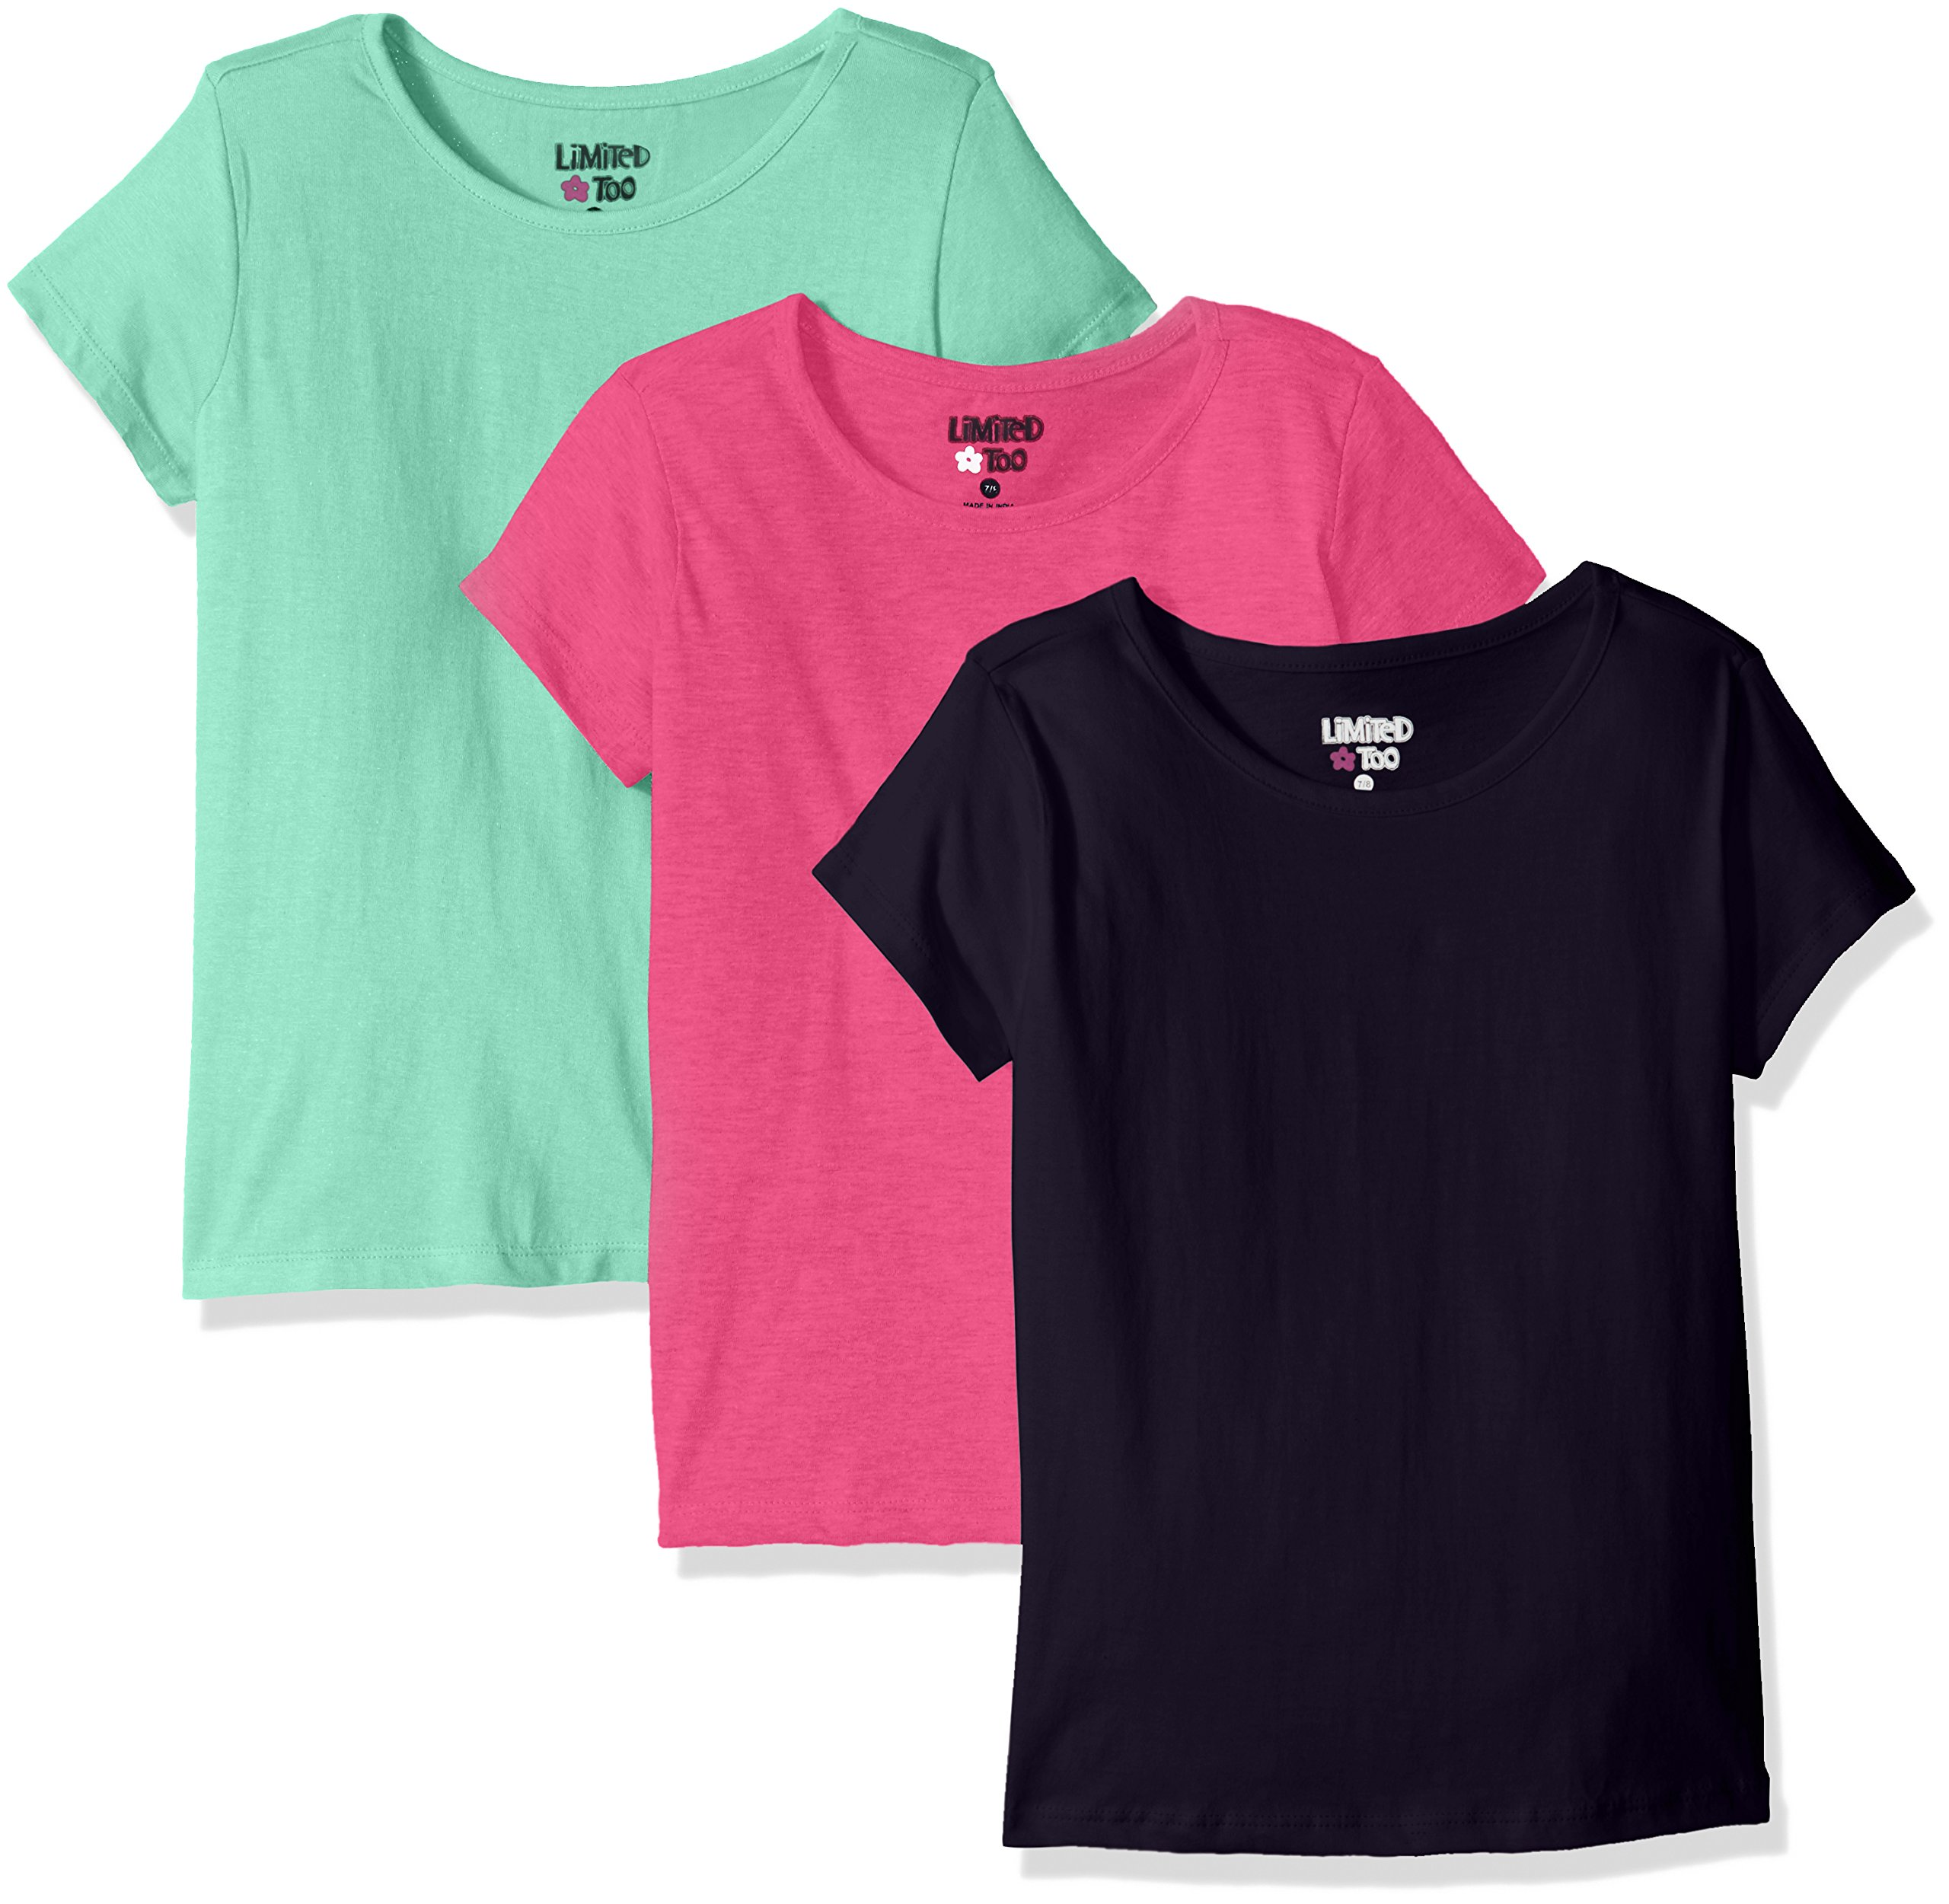 Limited Too Little Girls' 3 Pack: Short Sleeve T-Shirts, Fuchsia Pink/Pistachio/Peacoat, 5/6